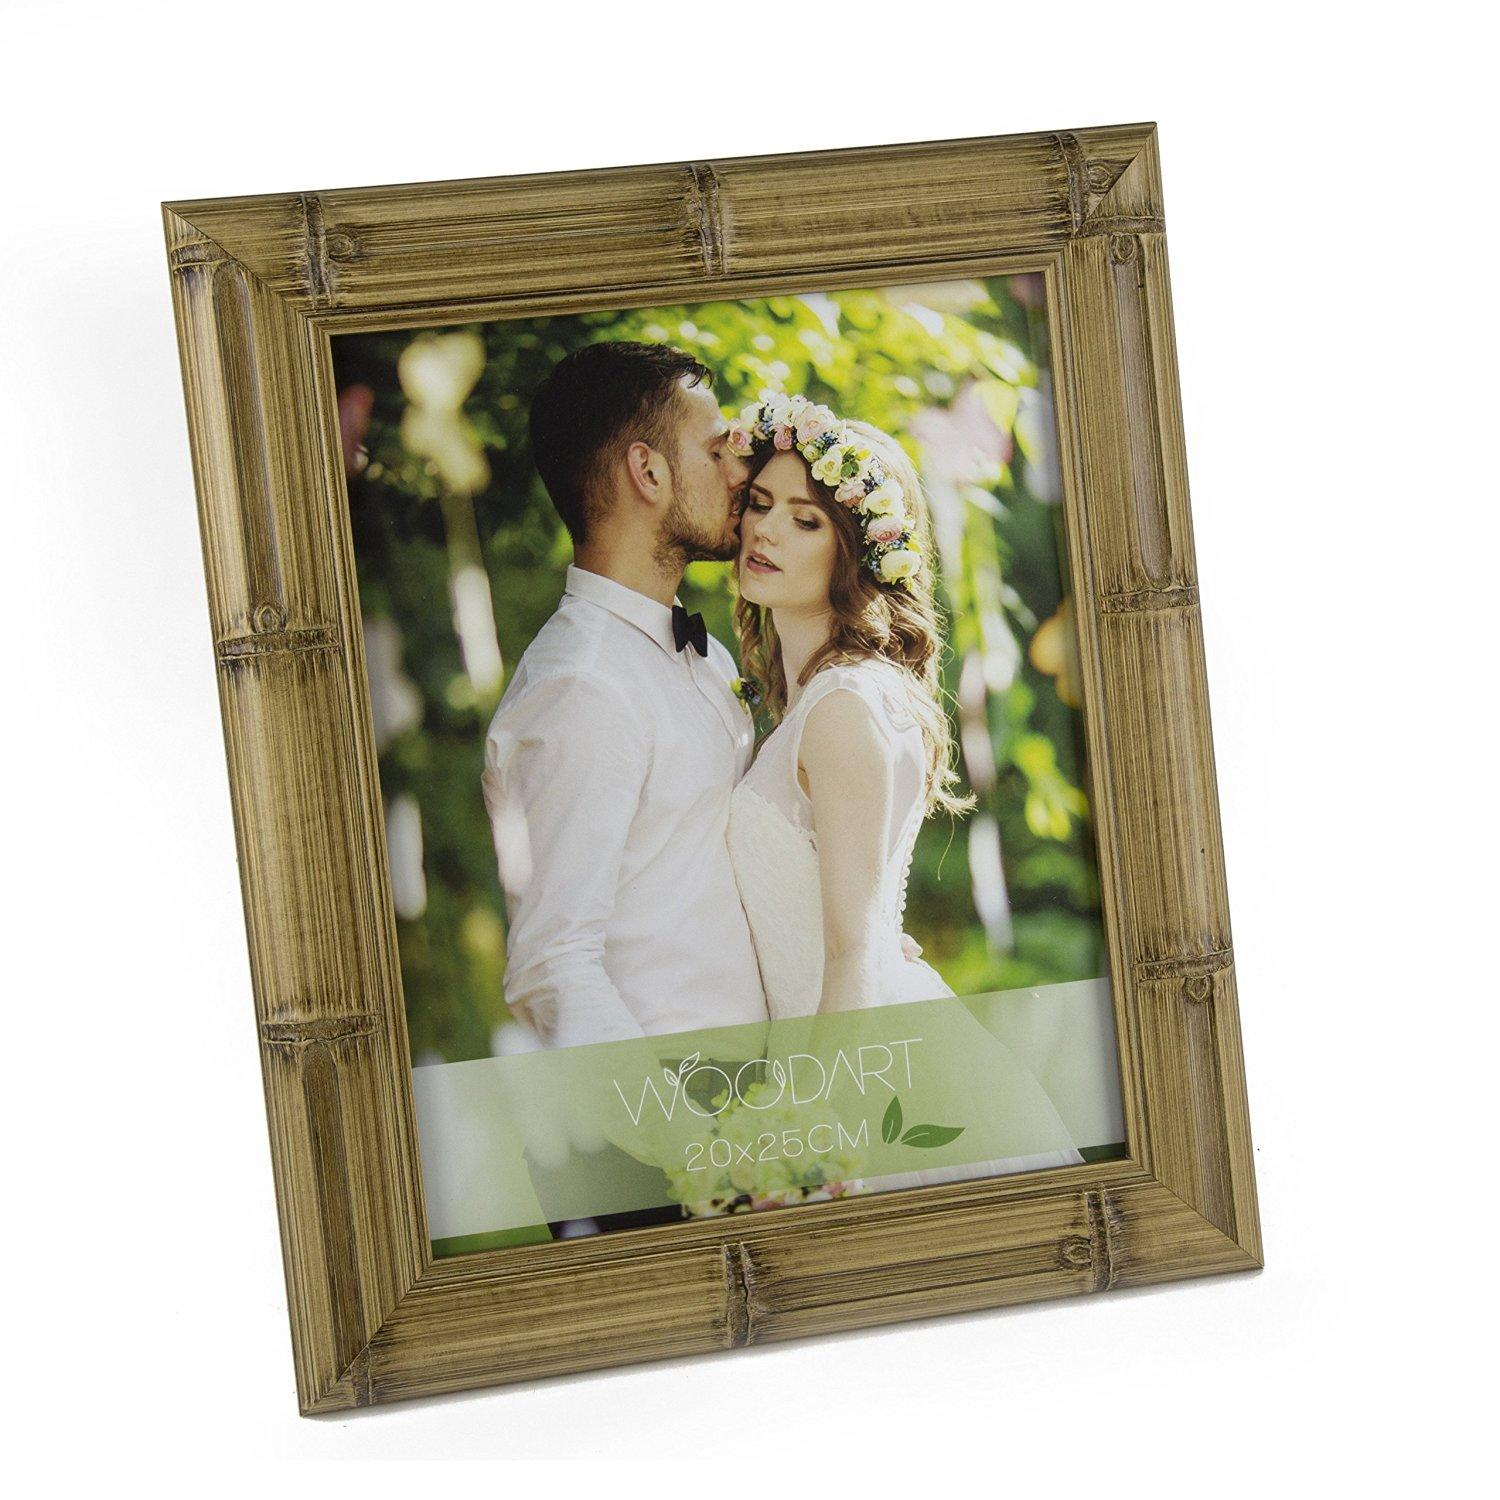 WOODART Picture Frame 6-inchesx8-inches Bamboo Style Wood Photo Frame